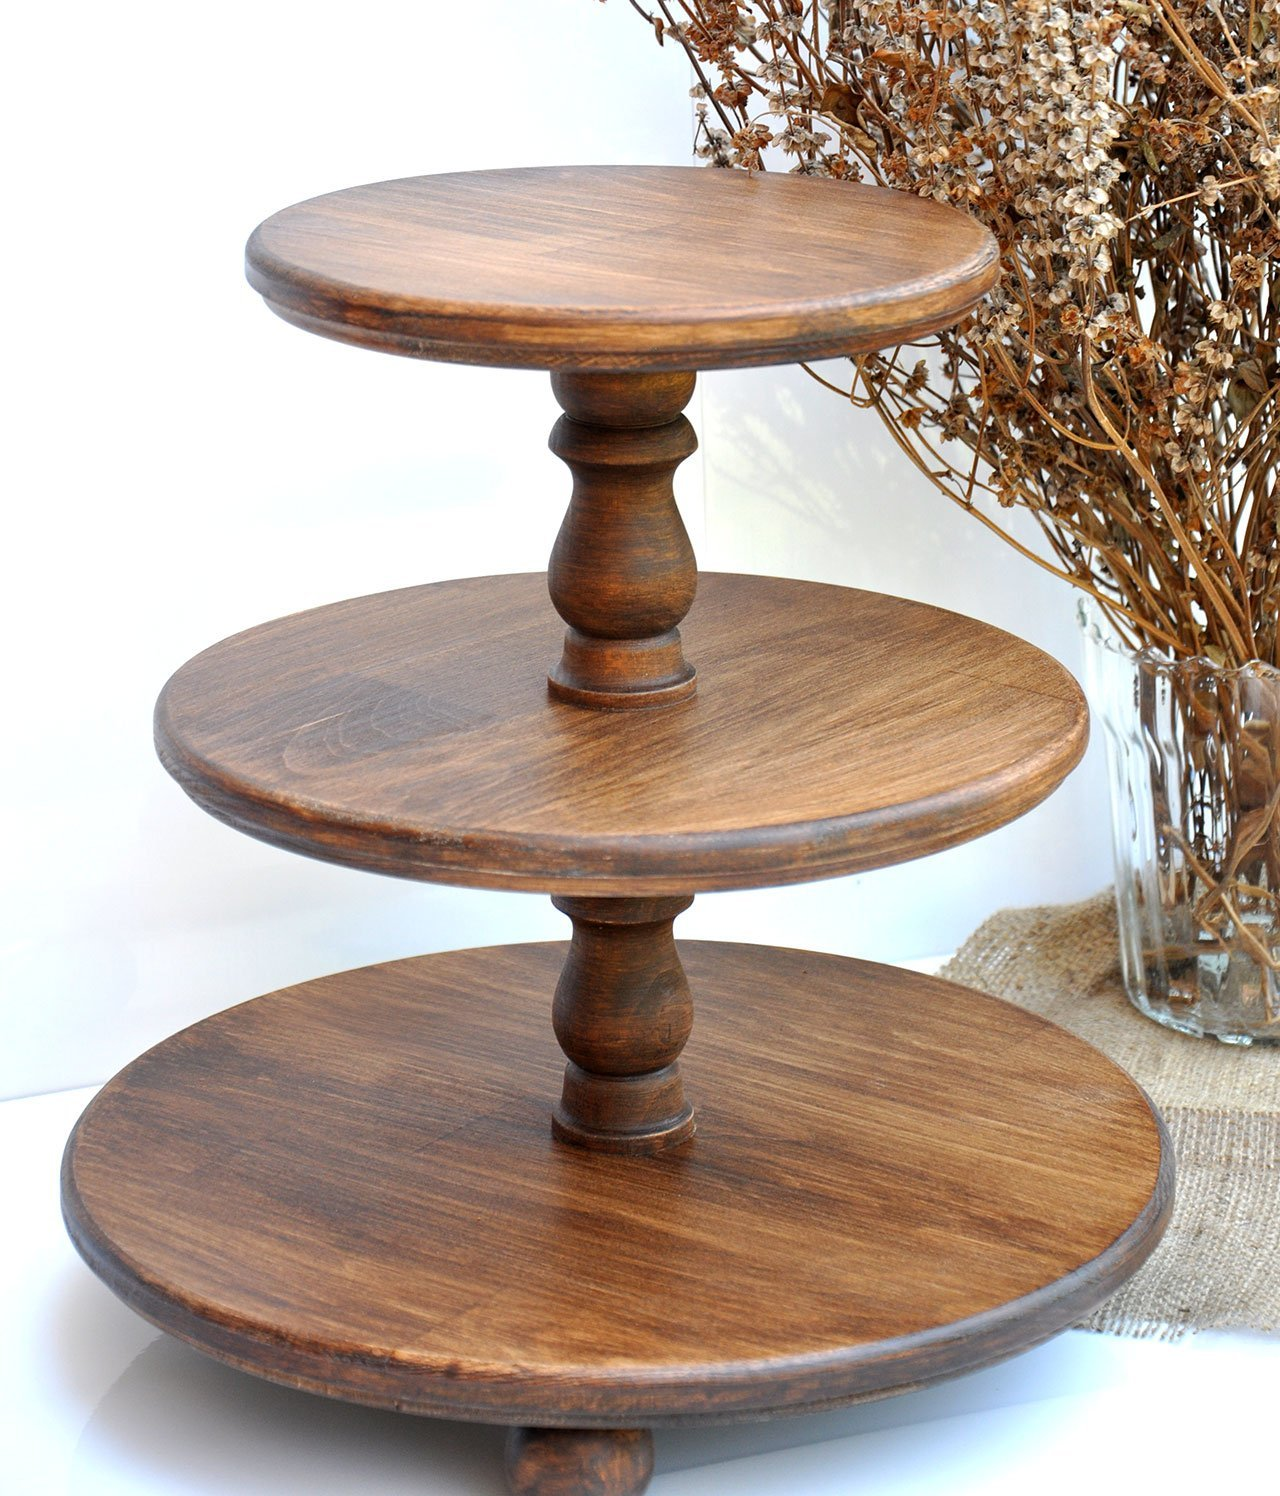 Demountable 3-tier wood cupcake stand for wedding Wood cake stand Wooden cupcake stand tier Wooden cake stand Rustic Baby shower decor Wedding centerpiece Rustic cupcake stands Rustic wedding decorations